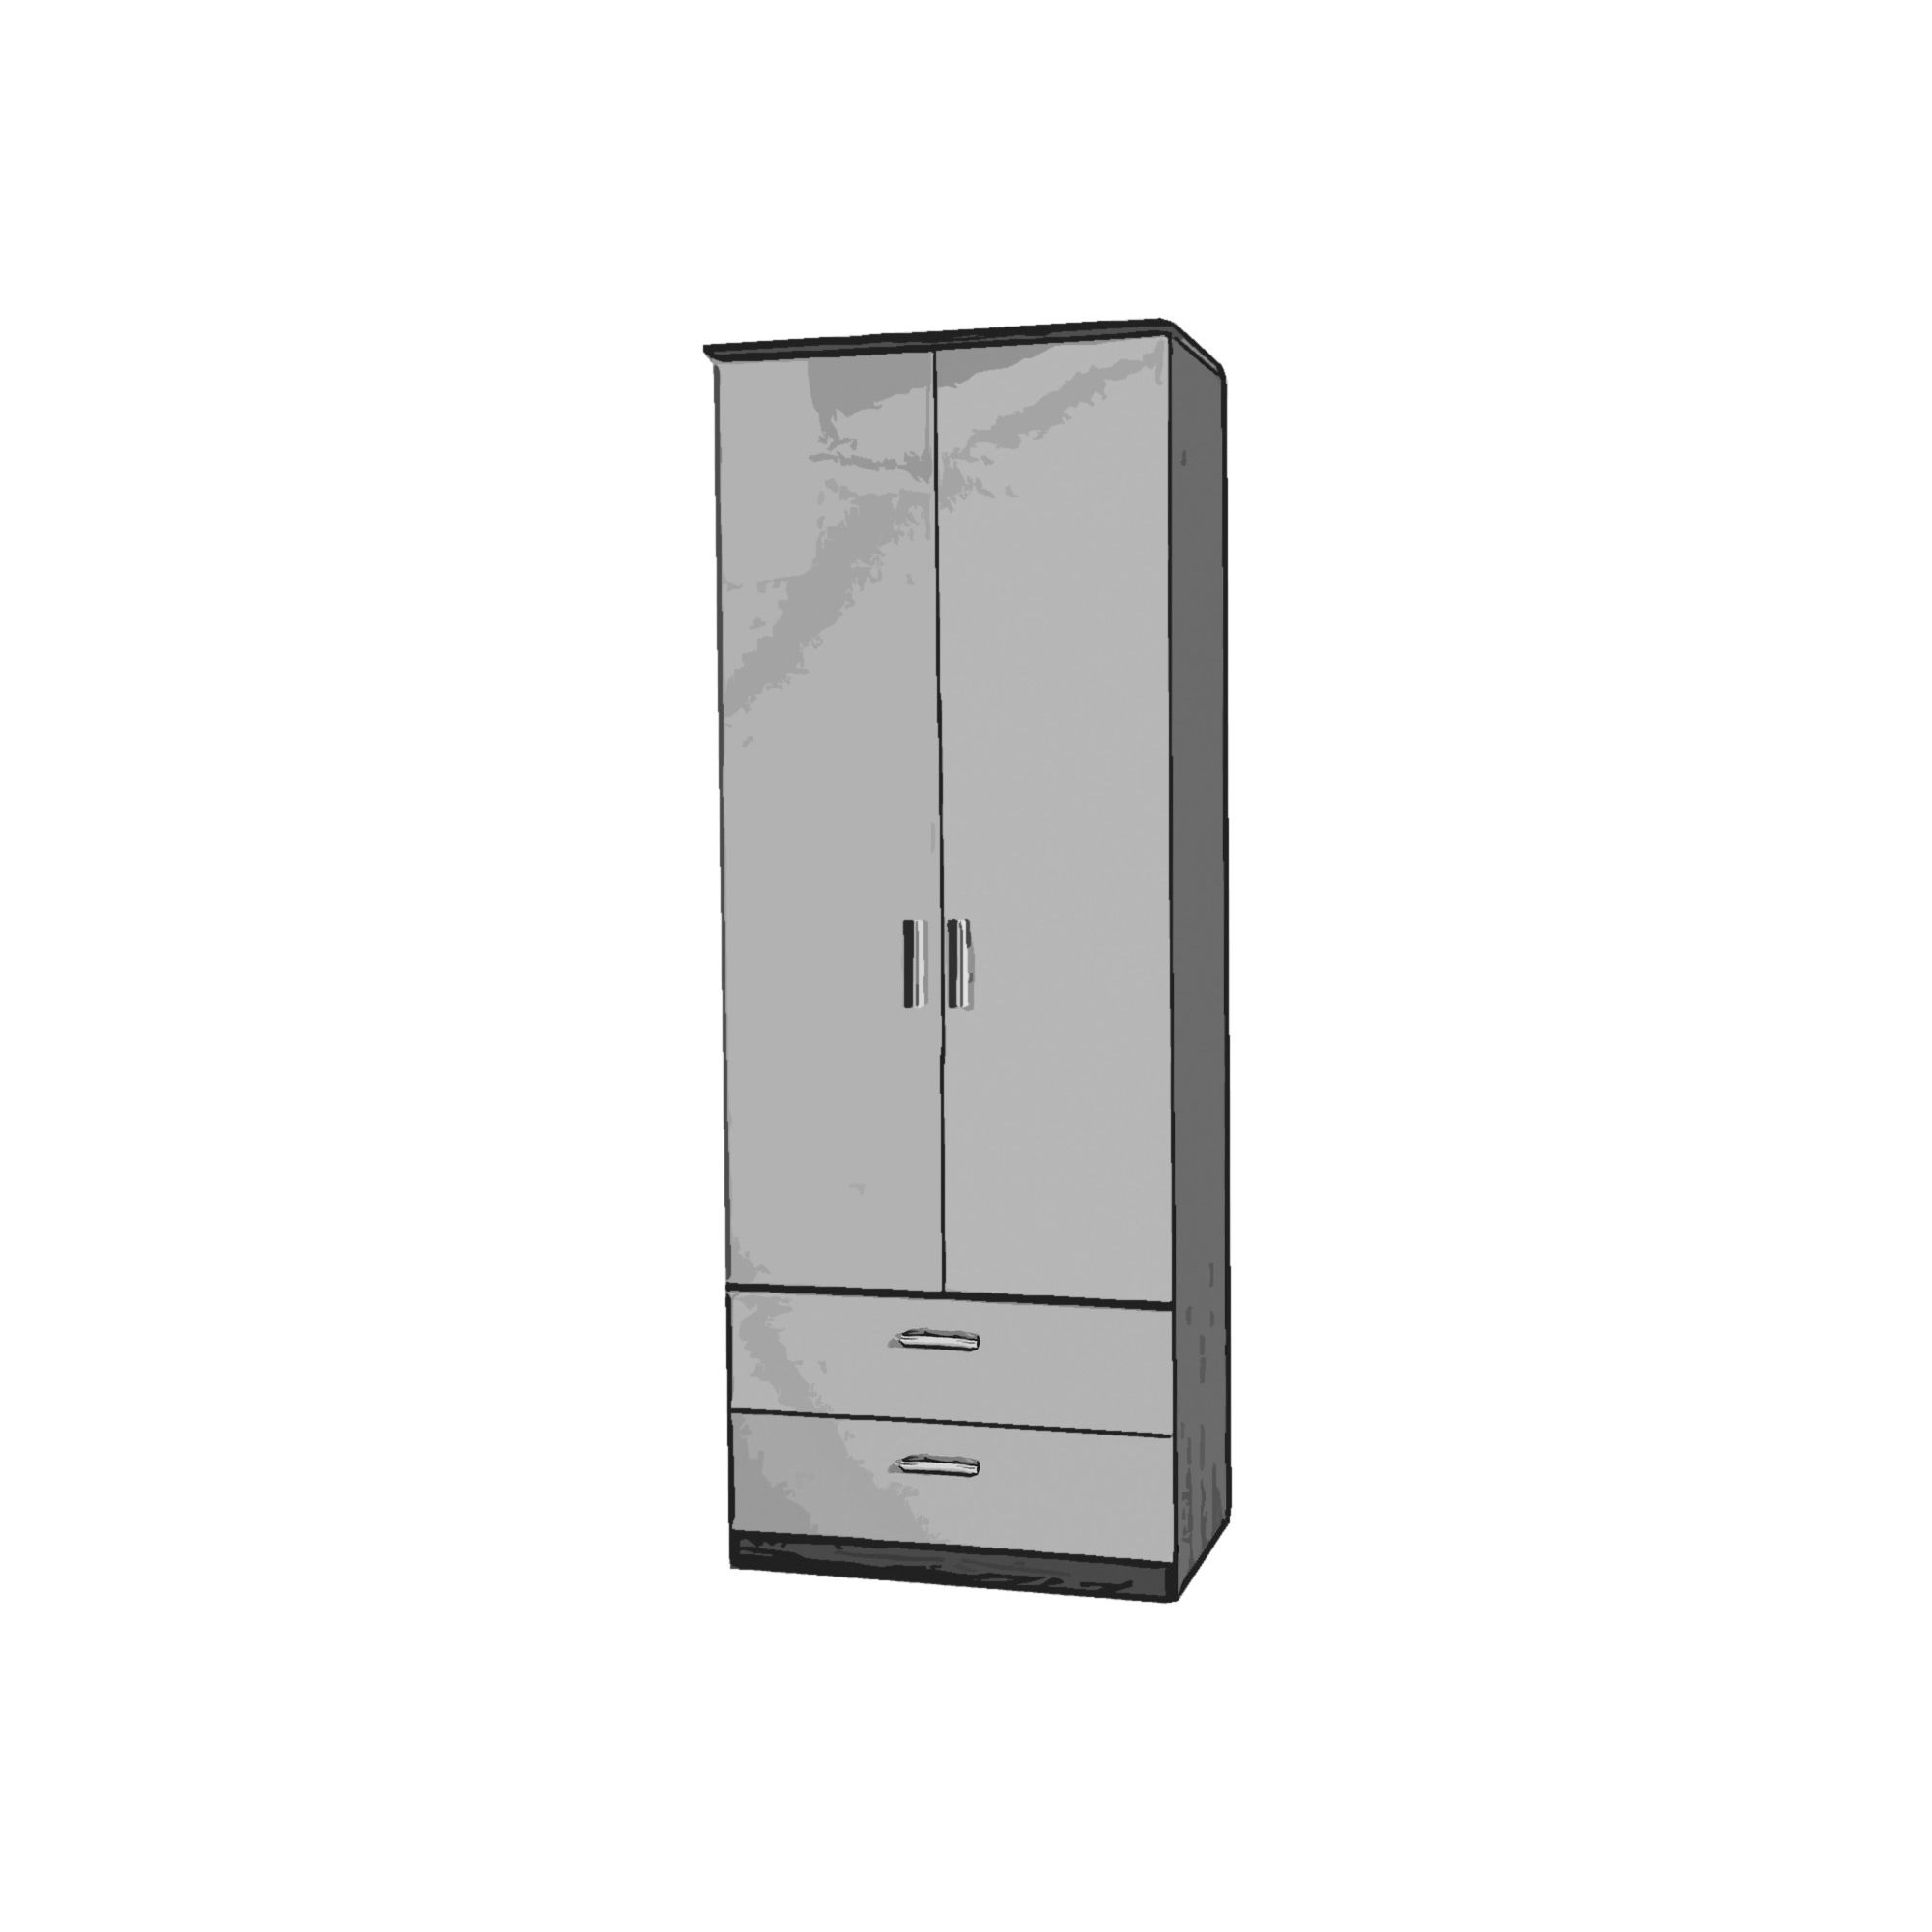 Welcome Furniture Mayfair Tall Wardrobe with 2 Drawers - Aubergine - Ebony - Black at Tesco Direct